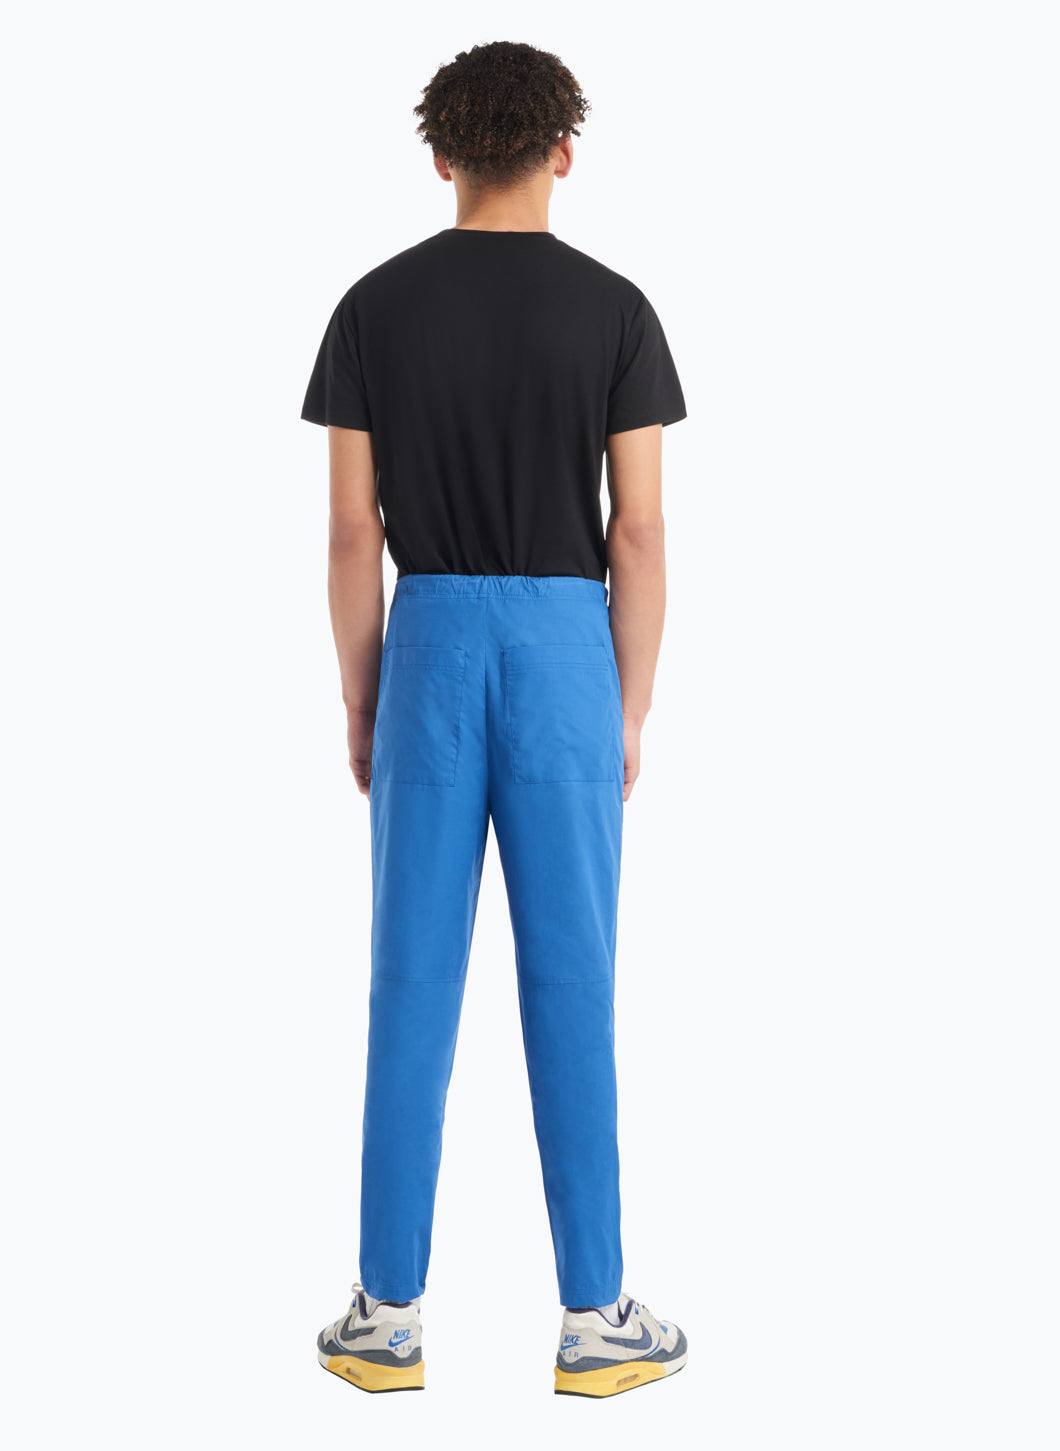 Drawstring Pants in Blue Poplin